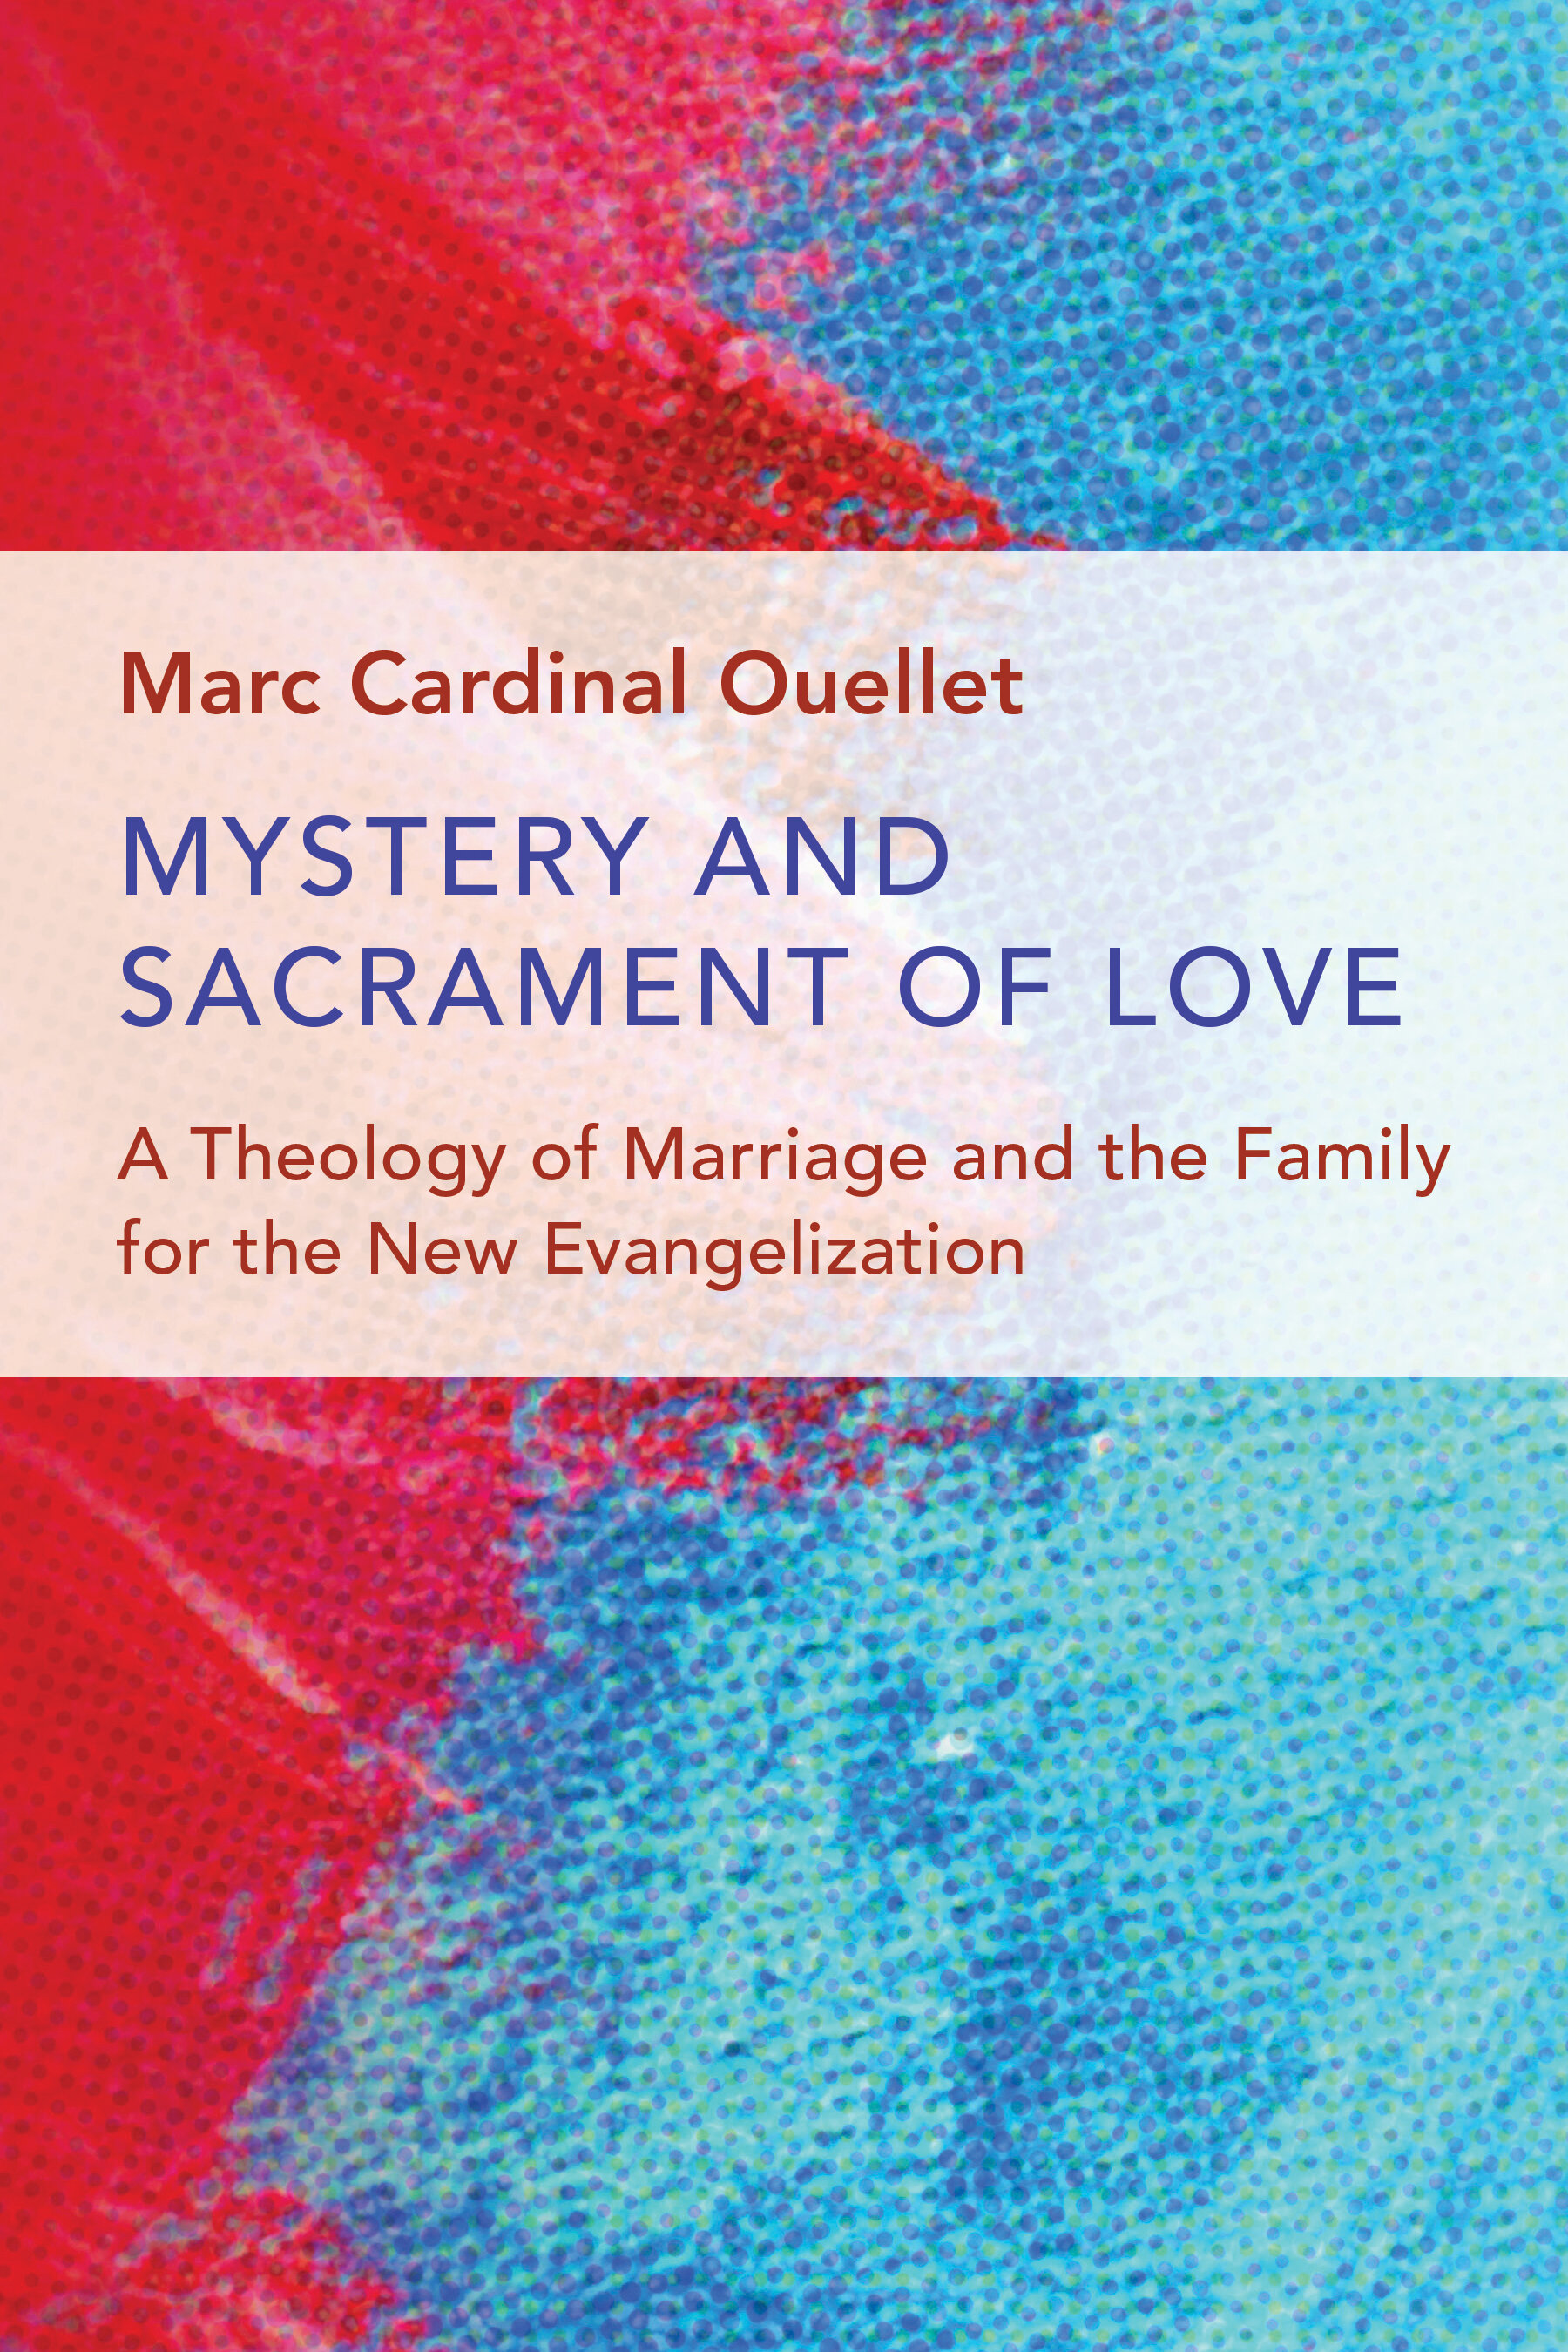 Mystery and Sacrament of Love: A Theology of Marriage and the Family for the New Evangelization